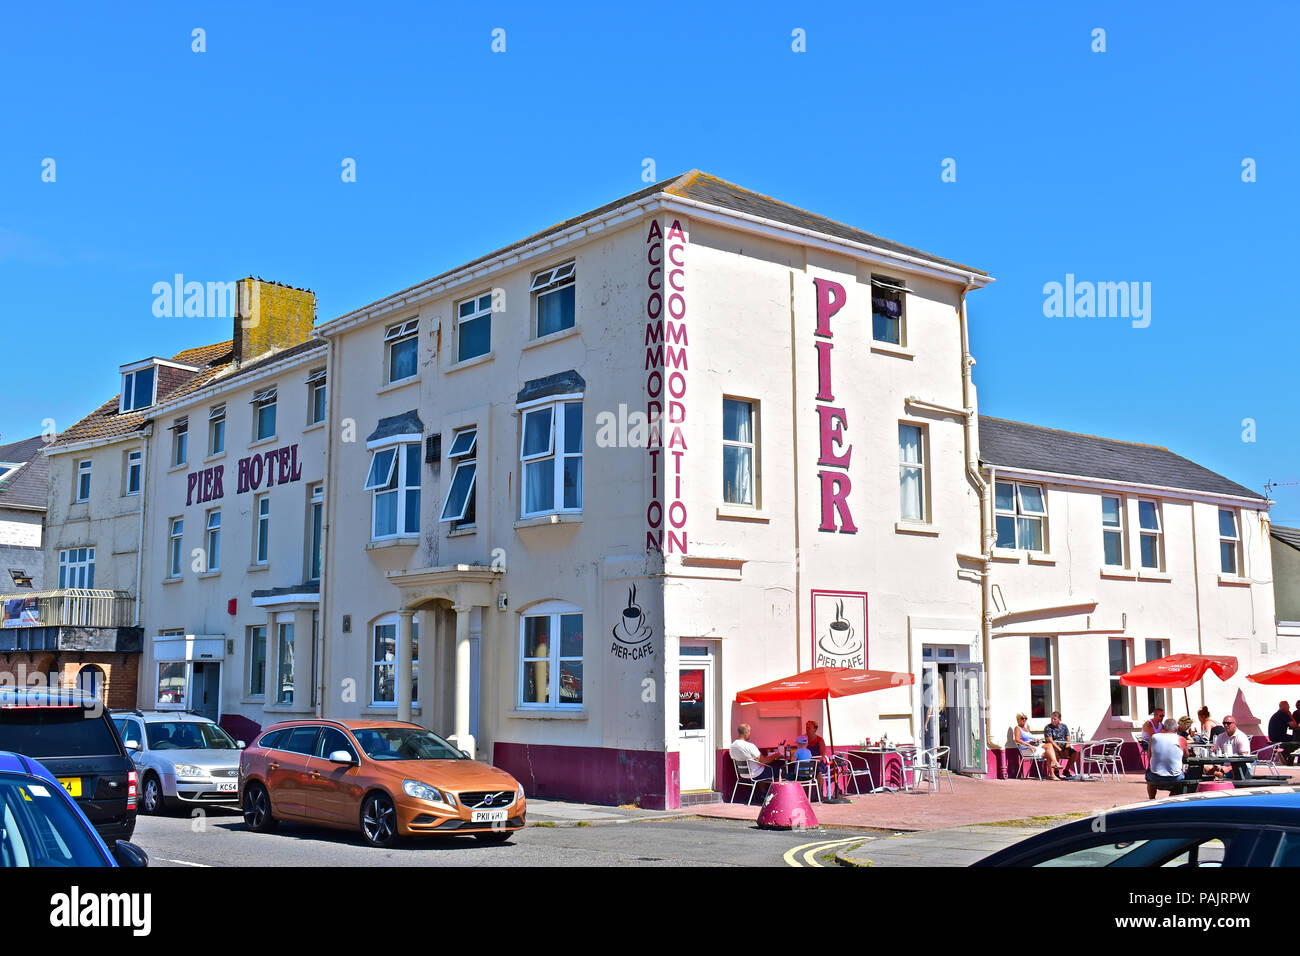 People enjoying a drink outside the Pier Hotel, which is situated on the Eastern Esplanade overlooking the sea at Porthcawl, South Wales - Stock Image